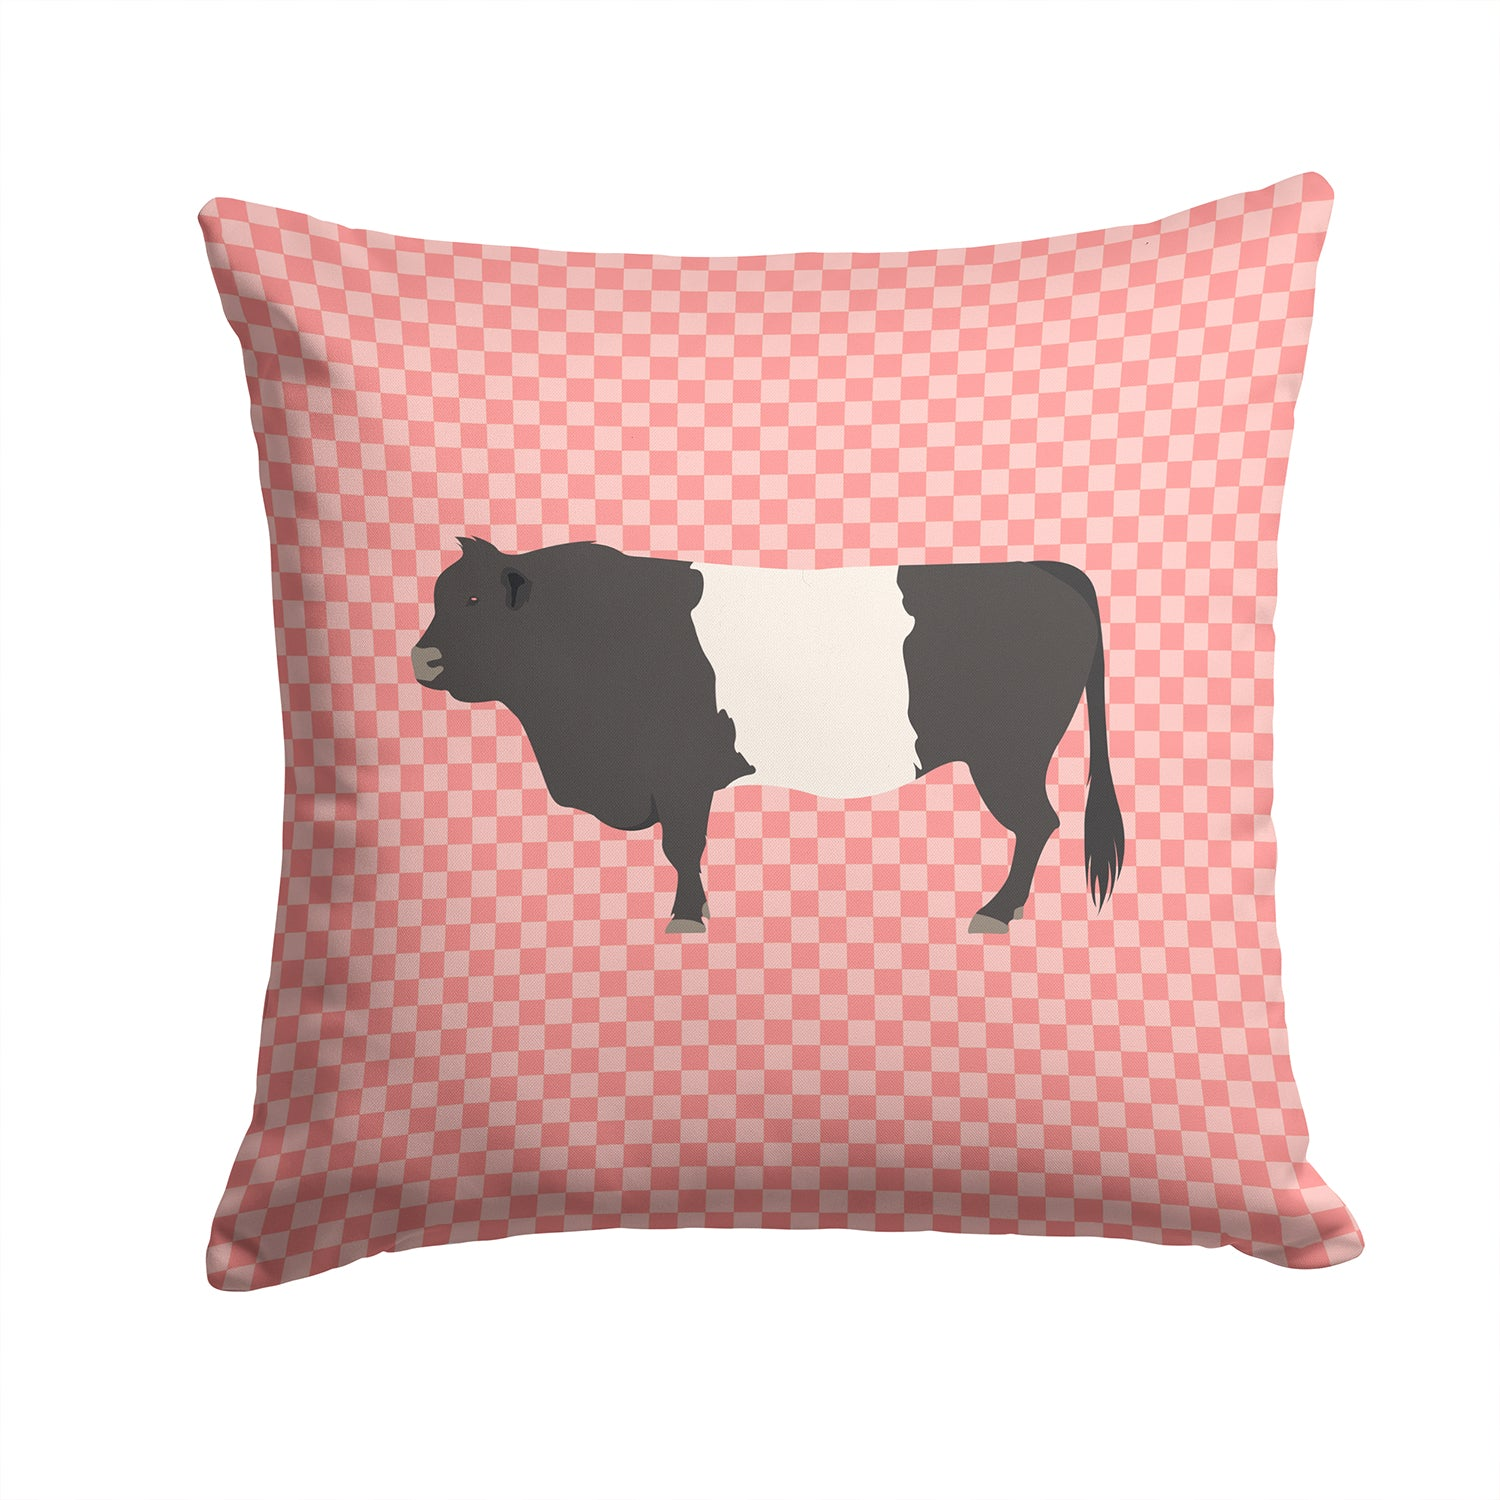 Belted Galloway Cow Pink Check Fabric Decorative Pillow BB7831PW1414 by Caroline's Treasures